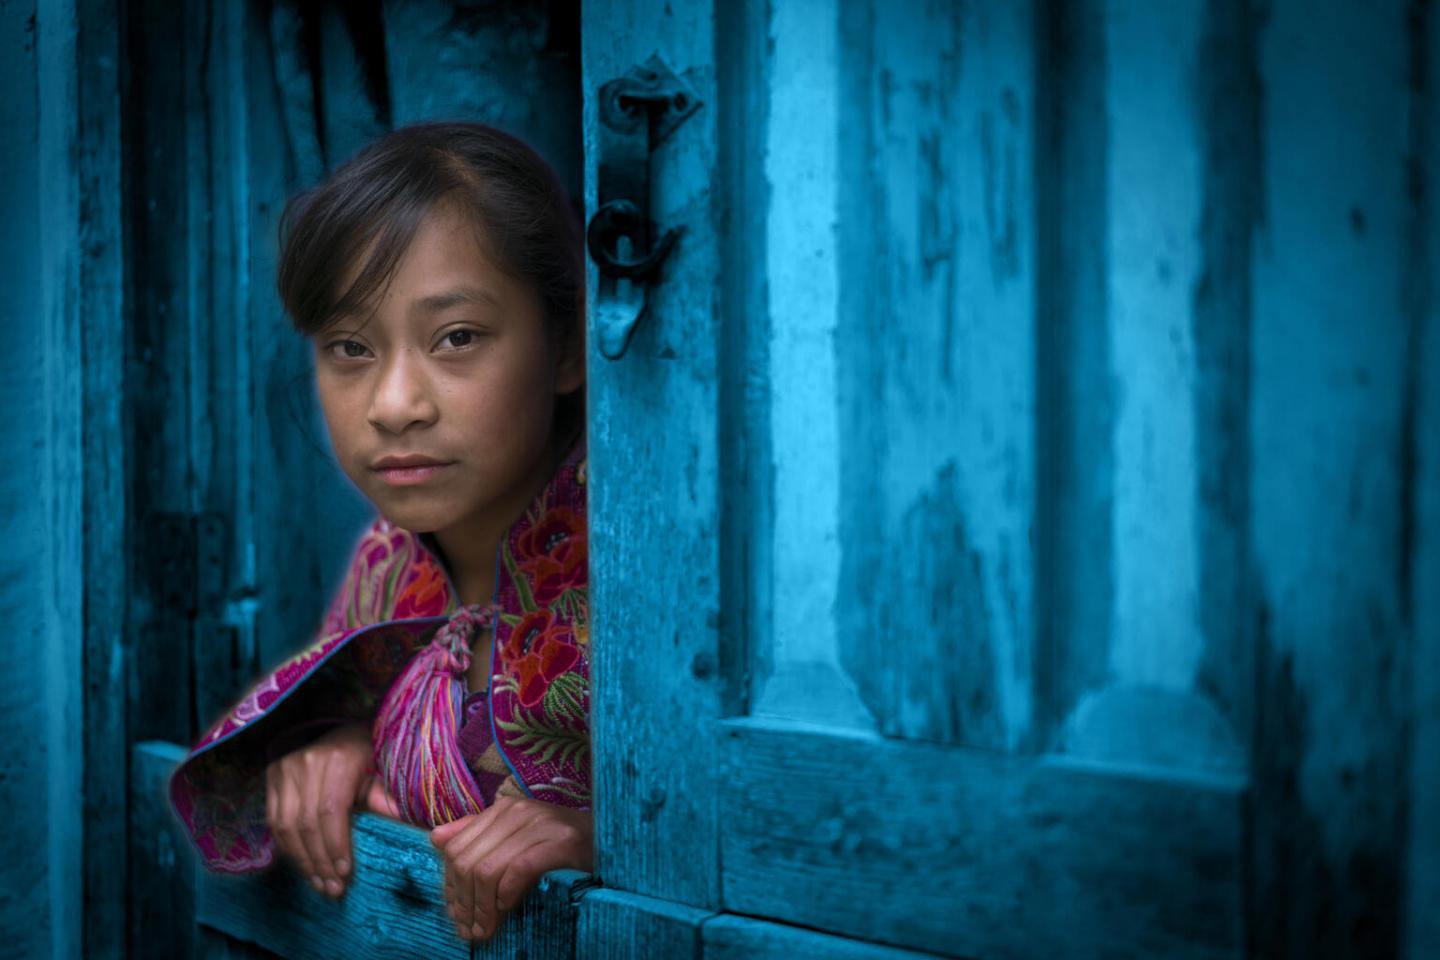 Young poor girl looking out of a window